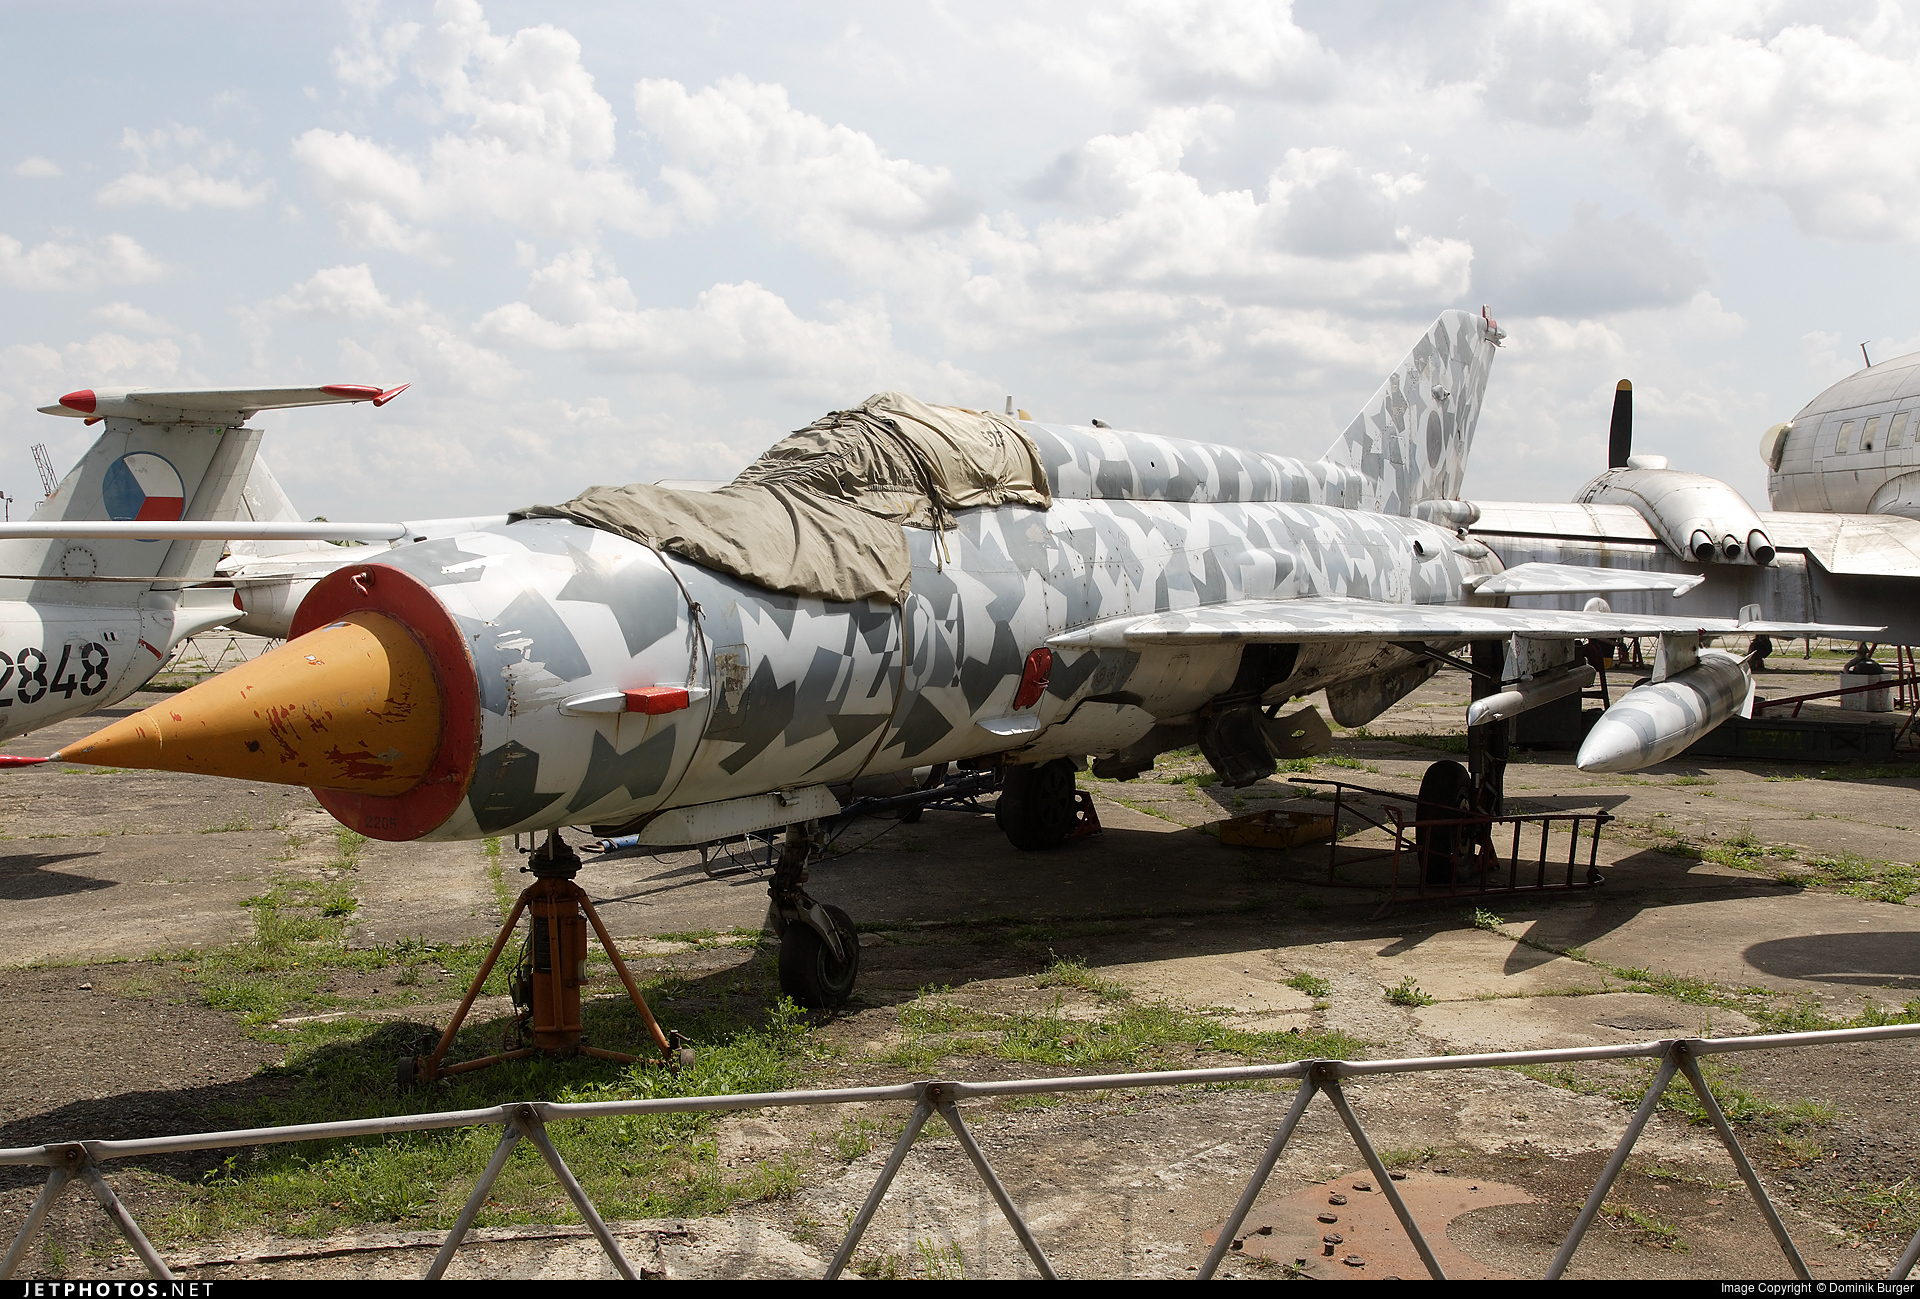 7701 - Mikoyan-Gurevich Mig-21 Fishbed - Czech Republic - Air Force